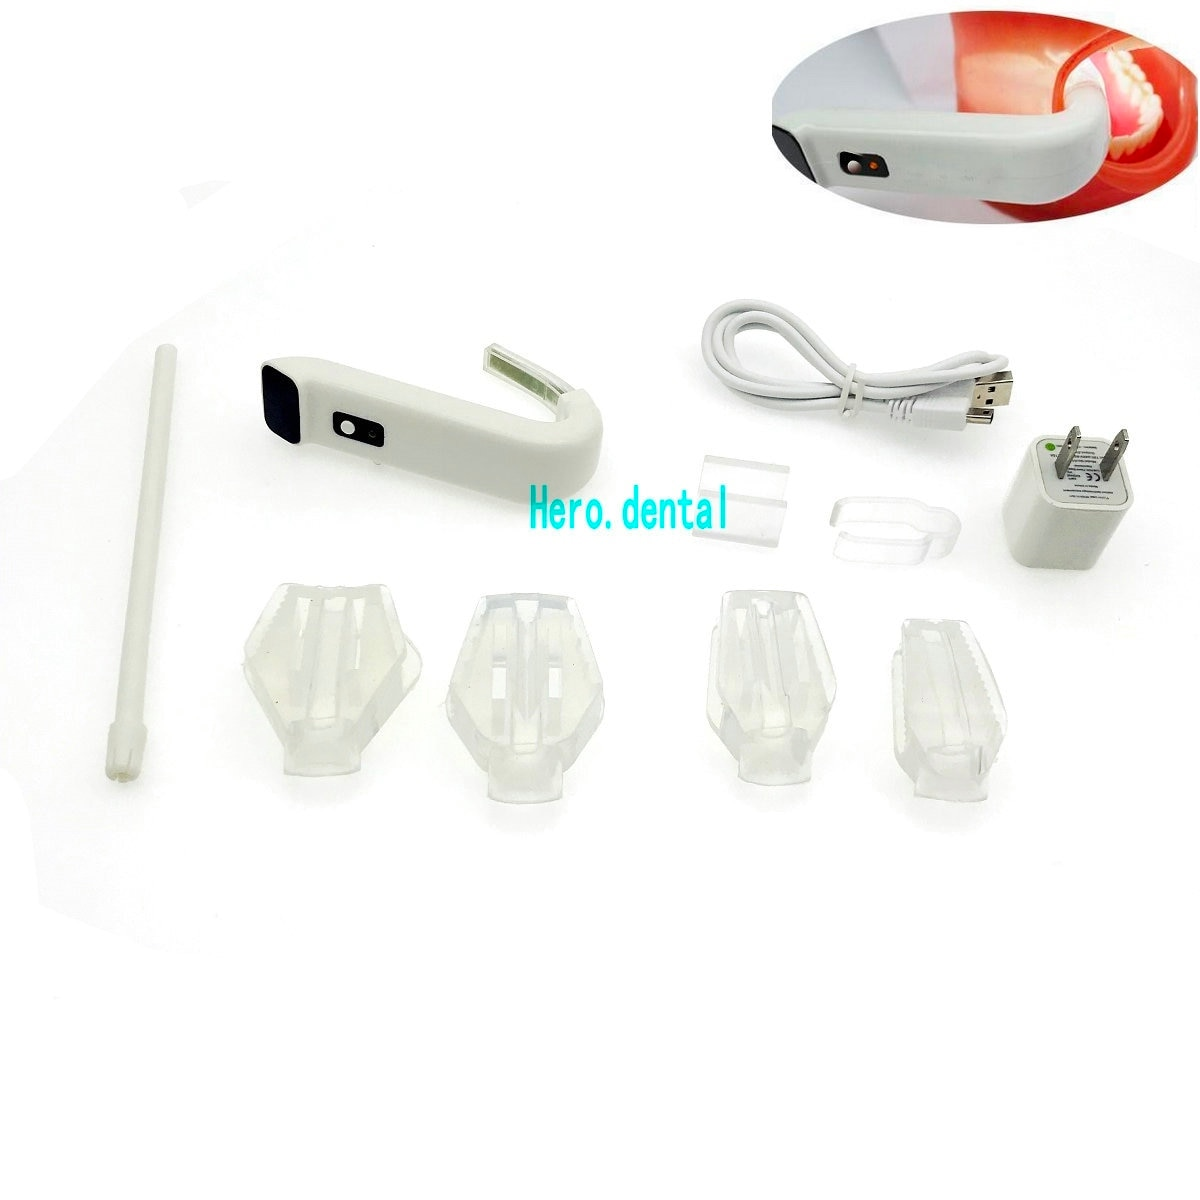 [해외]치과 Intraoral 라이트 플러스 무선 흡입 치과 의사 LED 조명 시스템 Autocla/Dental Intraoral Light Plus Wireless Suction Dentist LED Lighting System Autocla